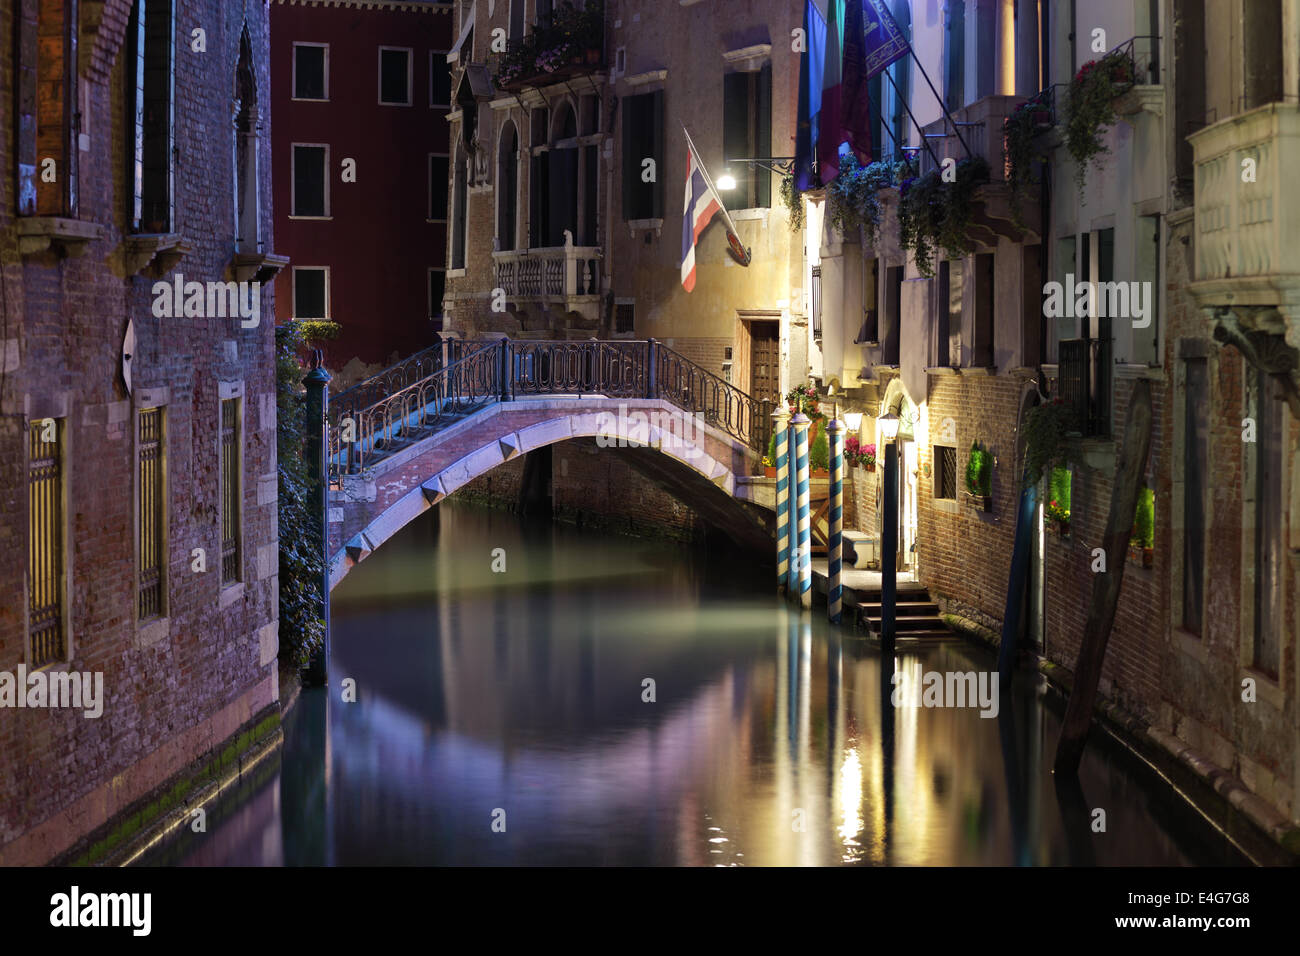 Venice bridge and canal at night - Stock Image